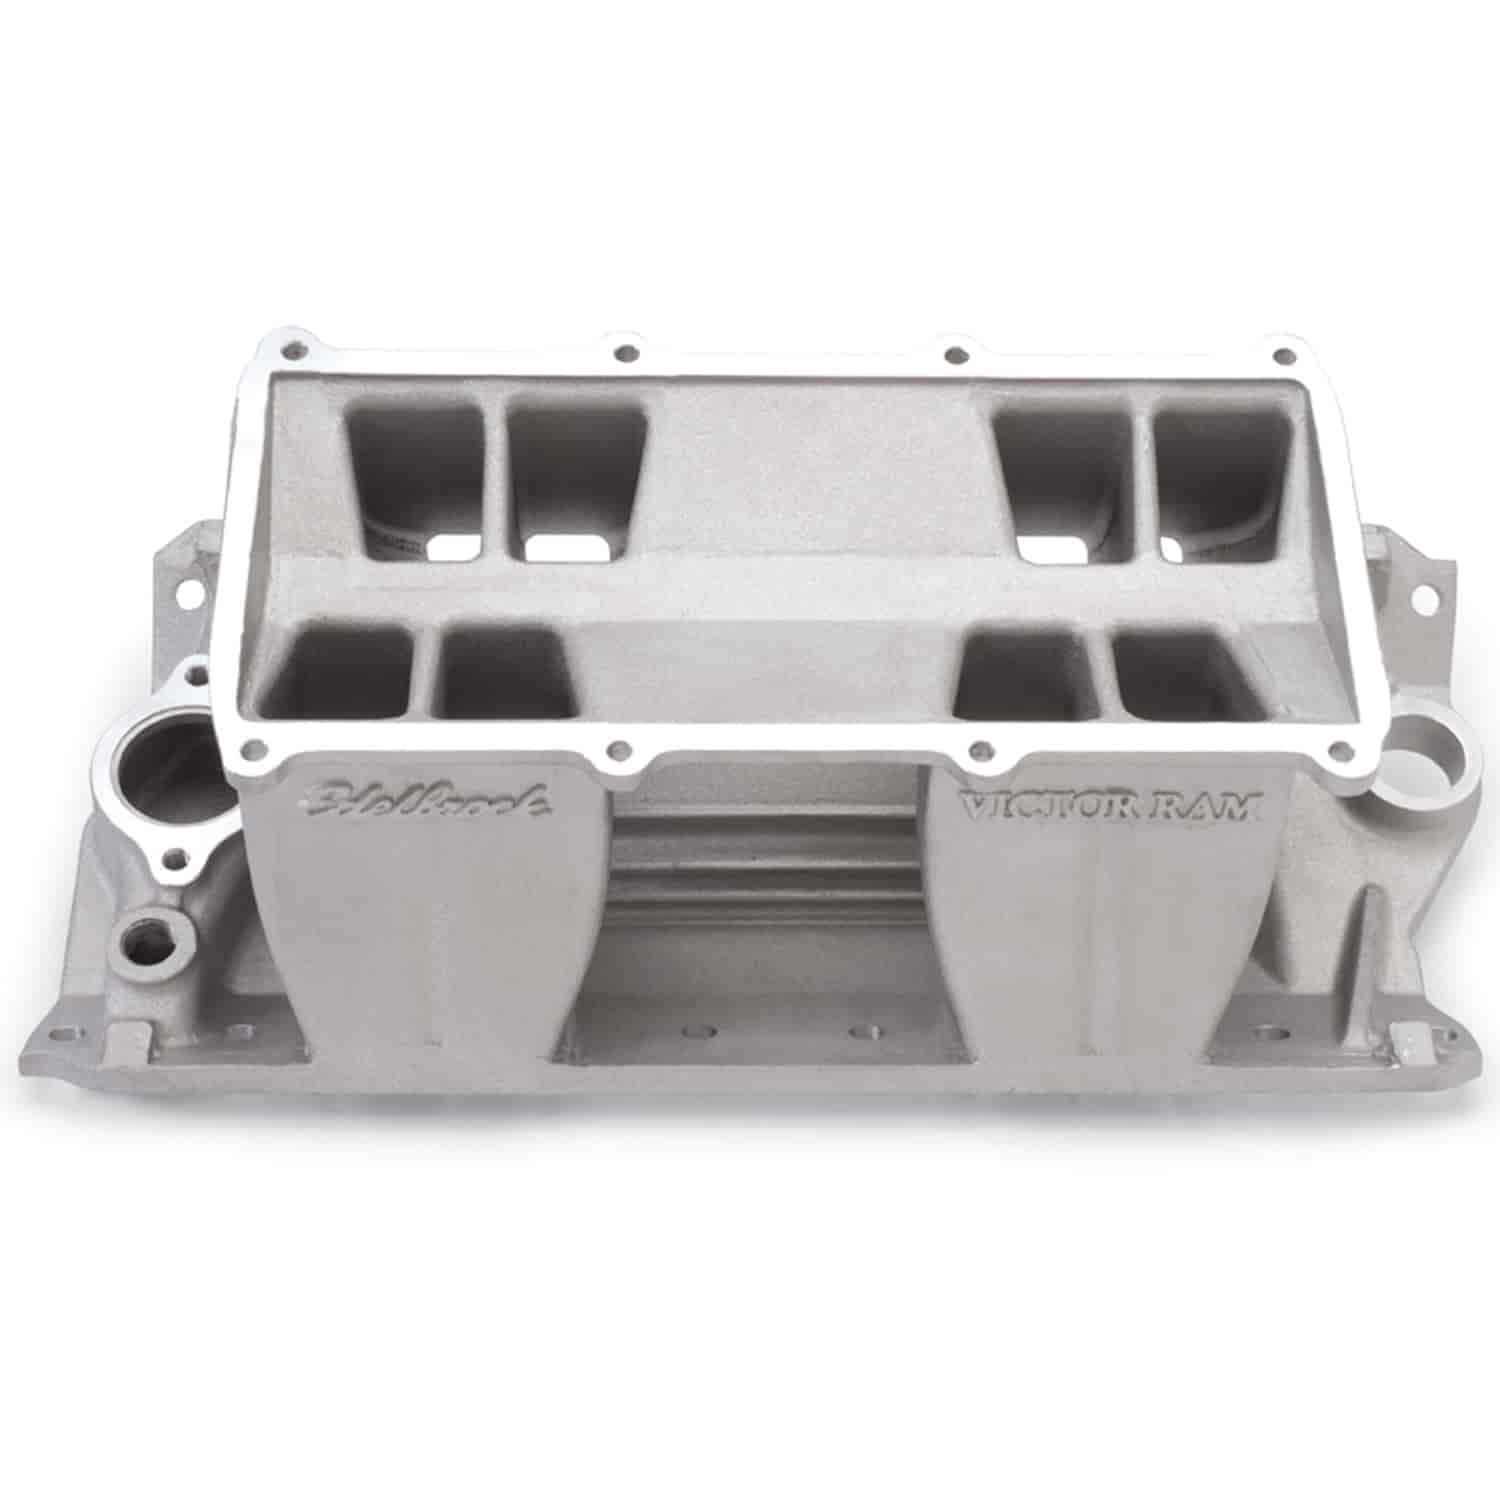 Edelbrock 7070 - Edelbrock Victor Series Intake Manifolds for Small Block Chevy